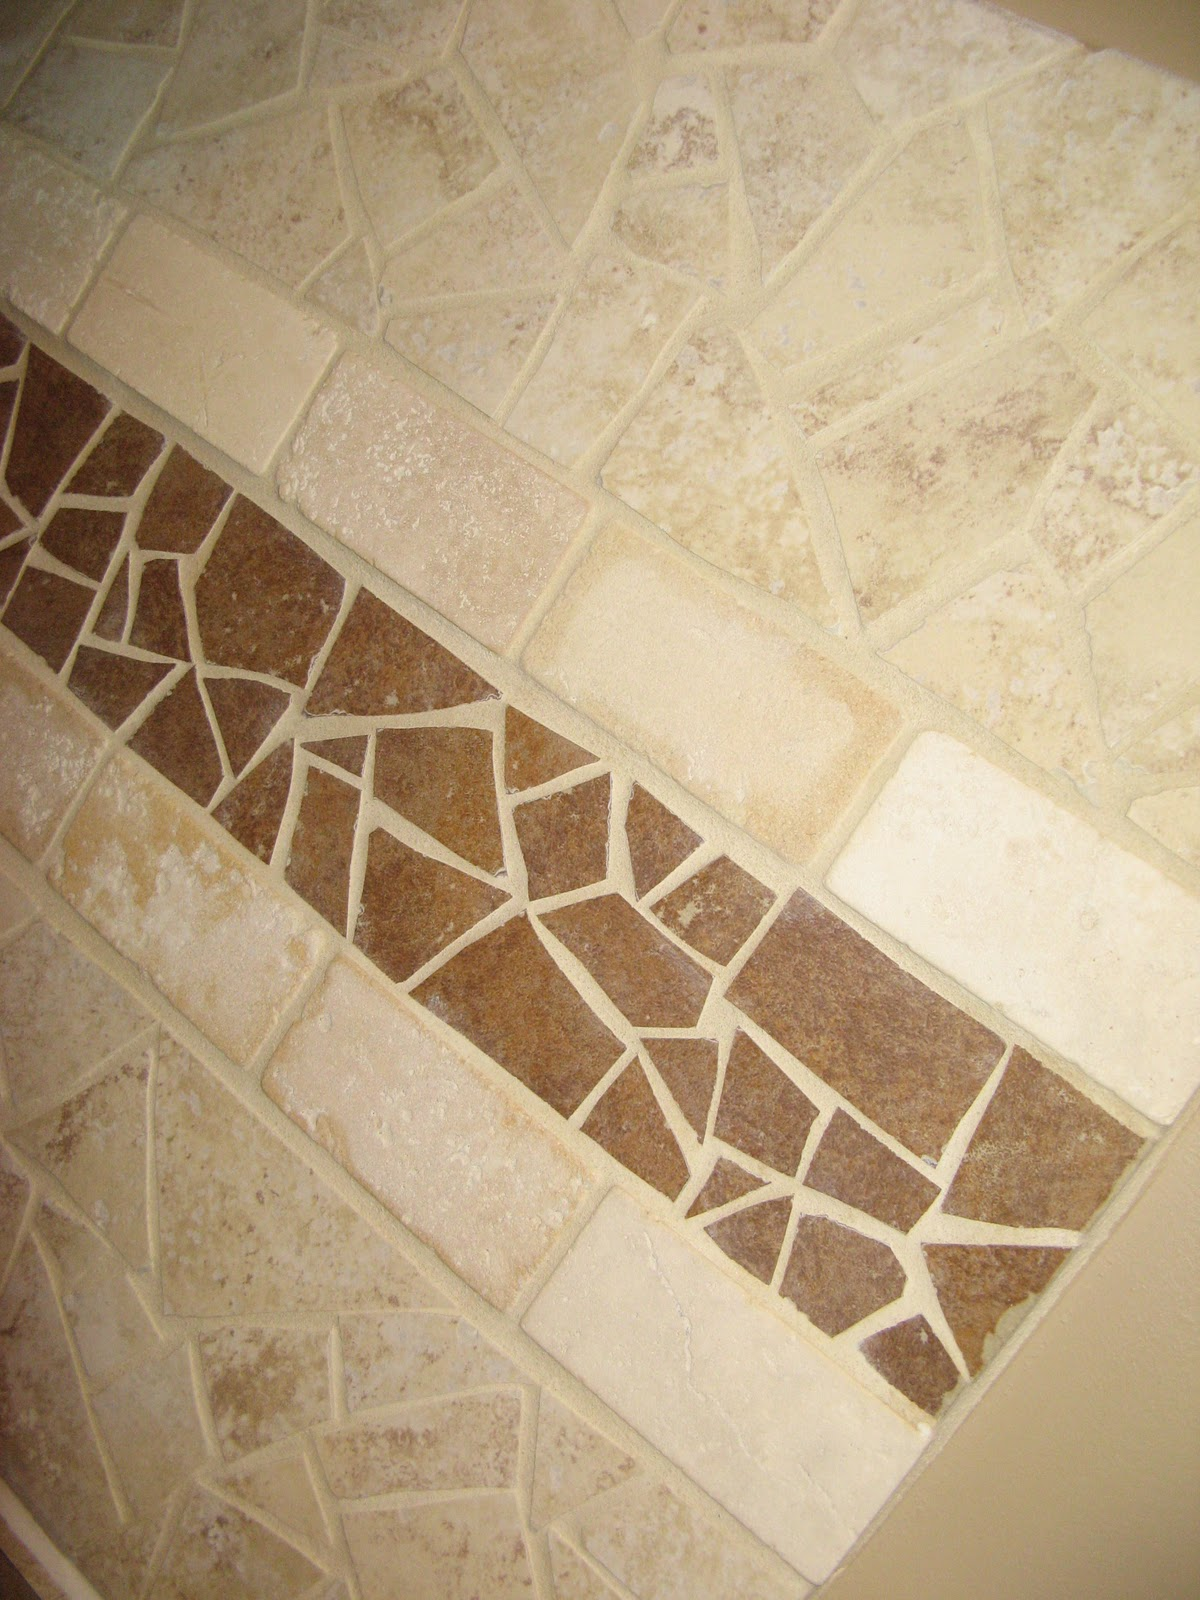 Susan snyder mosaic backsplash broken ceramic tile mosaic backsplash close up dailygadgetfo Images